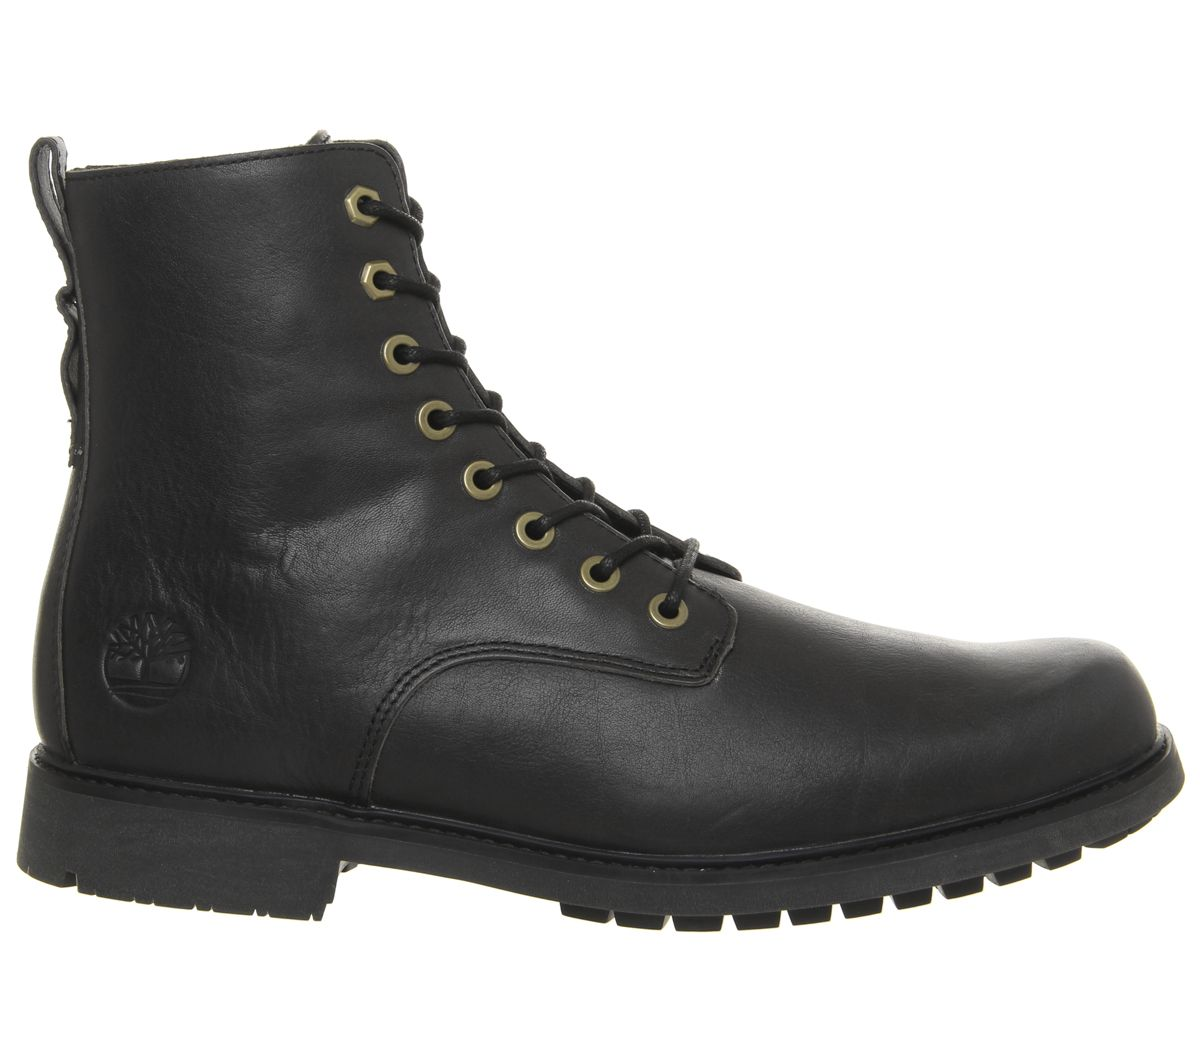 91f90f31720 Lux Lace Up Boots